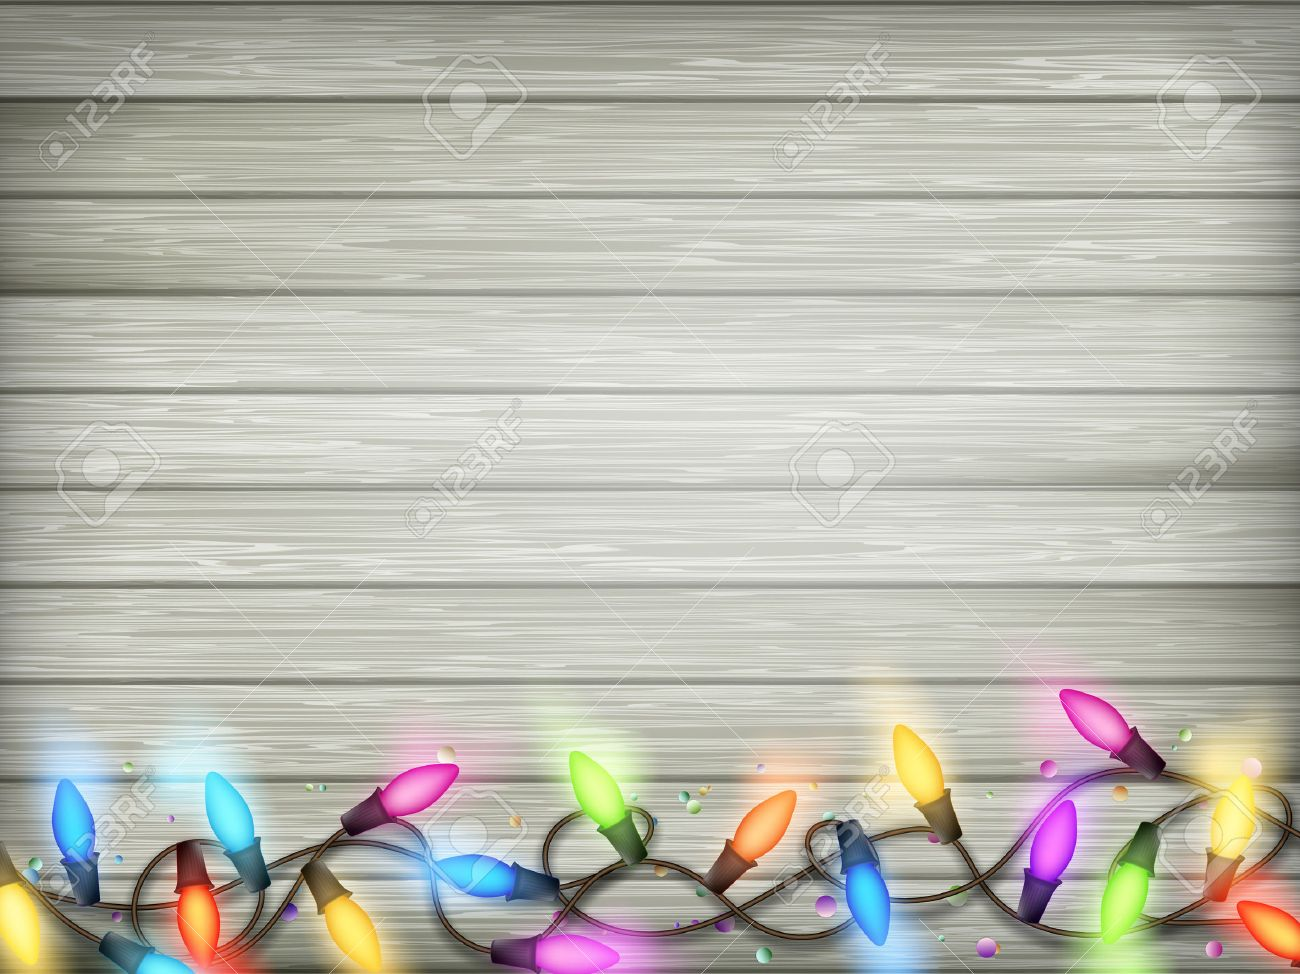 Christmas Rustic Background - Vintage Planked Wood With Lights ...